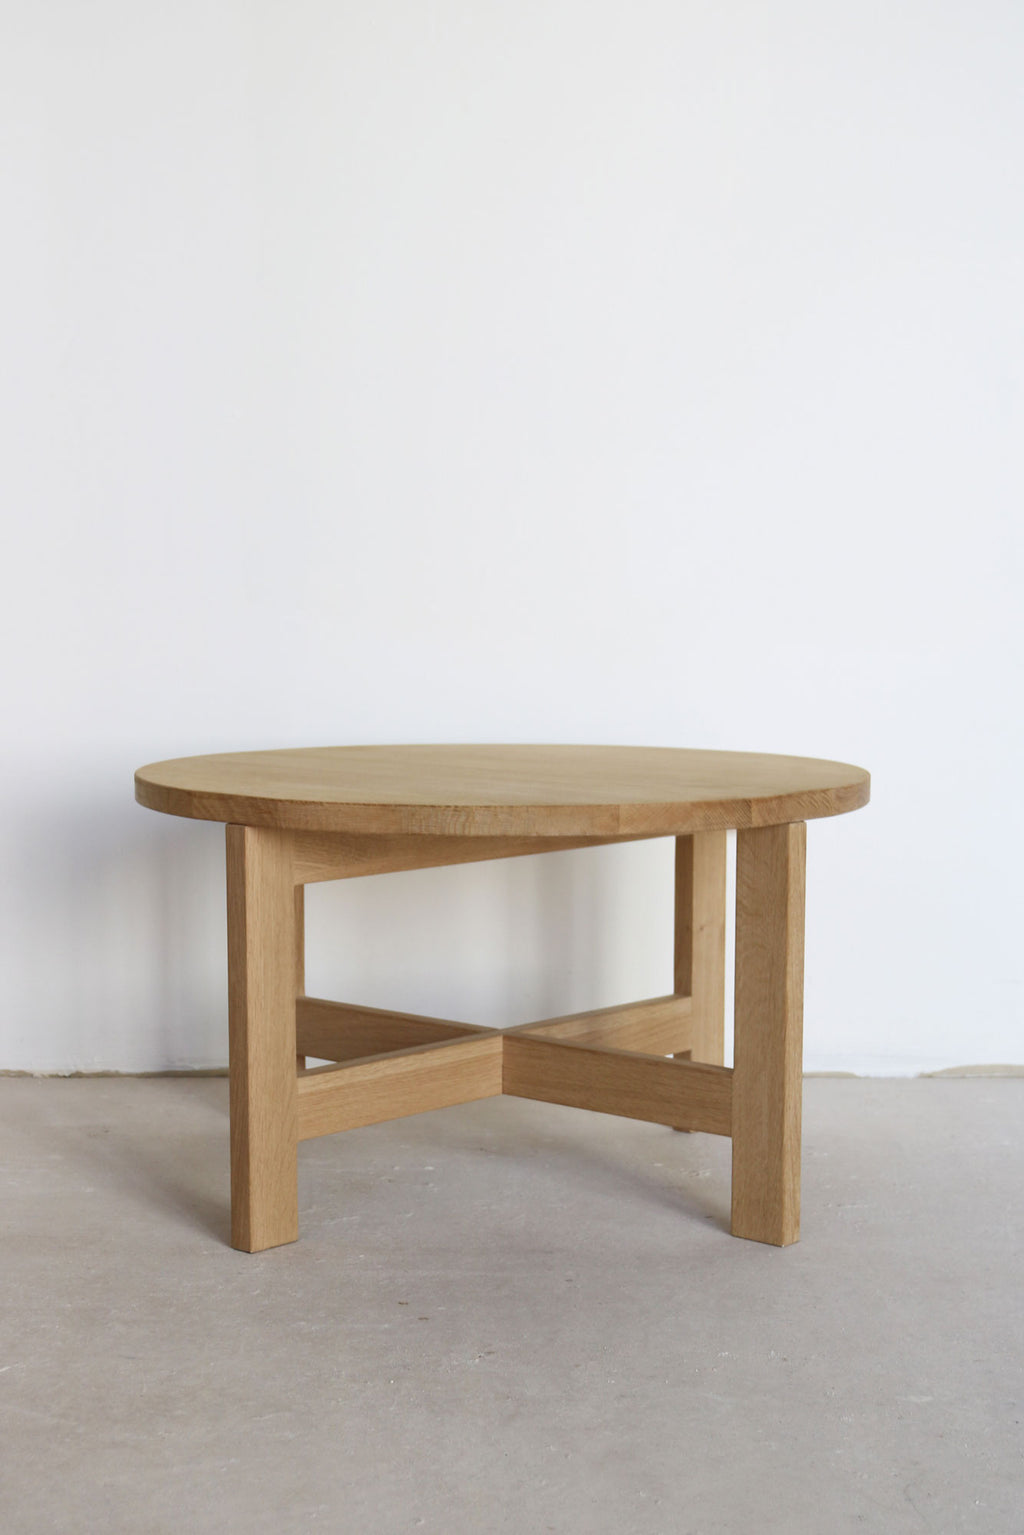 Coffeetable Erde - Frontansicht